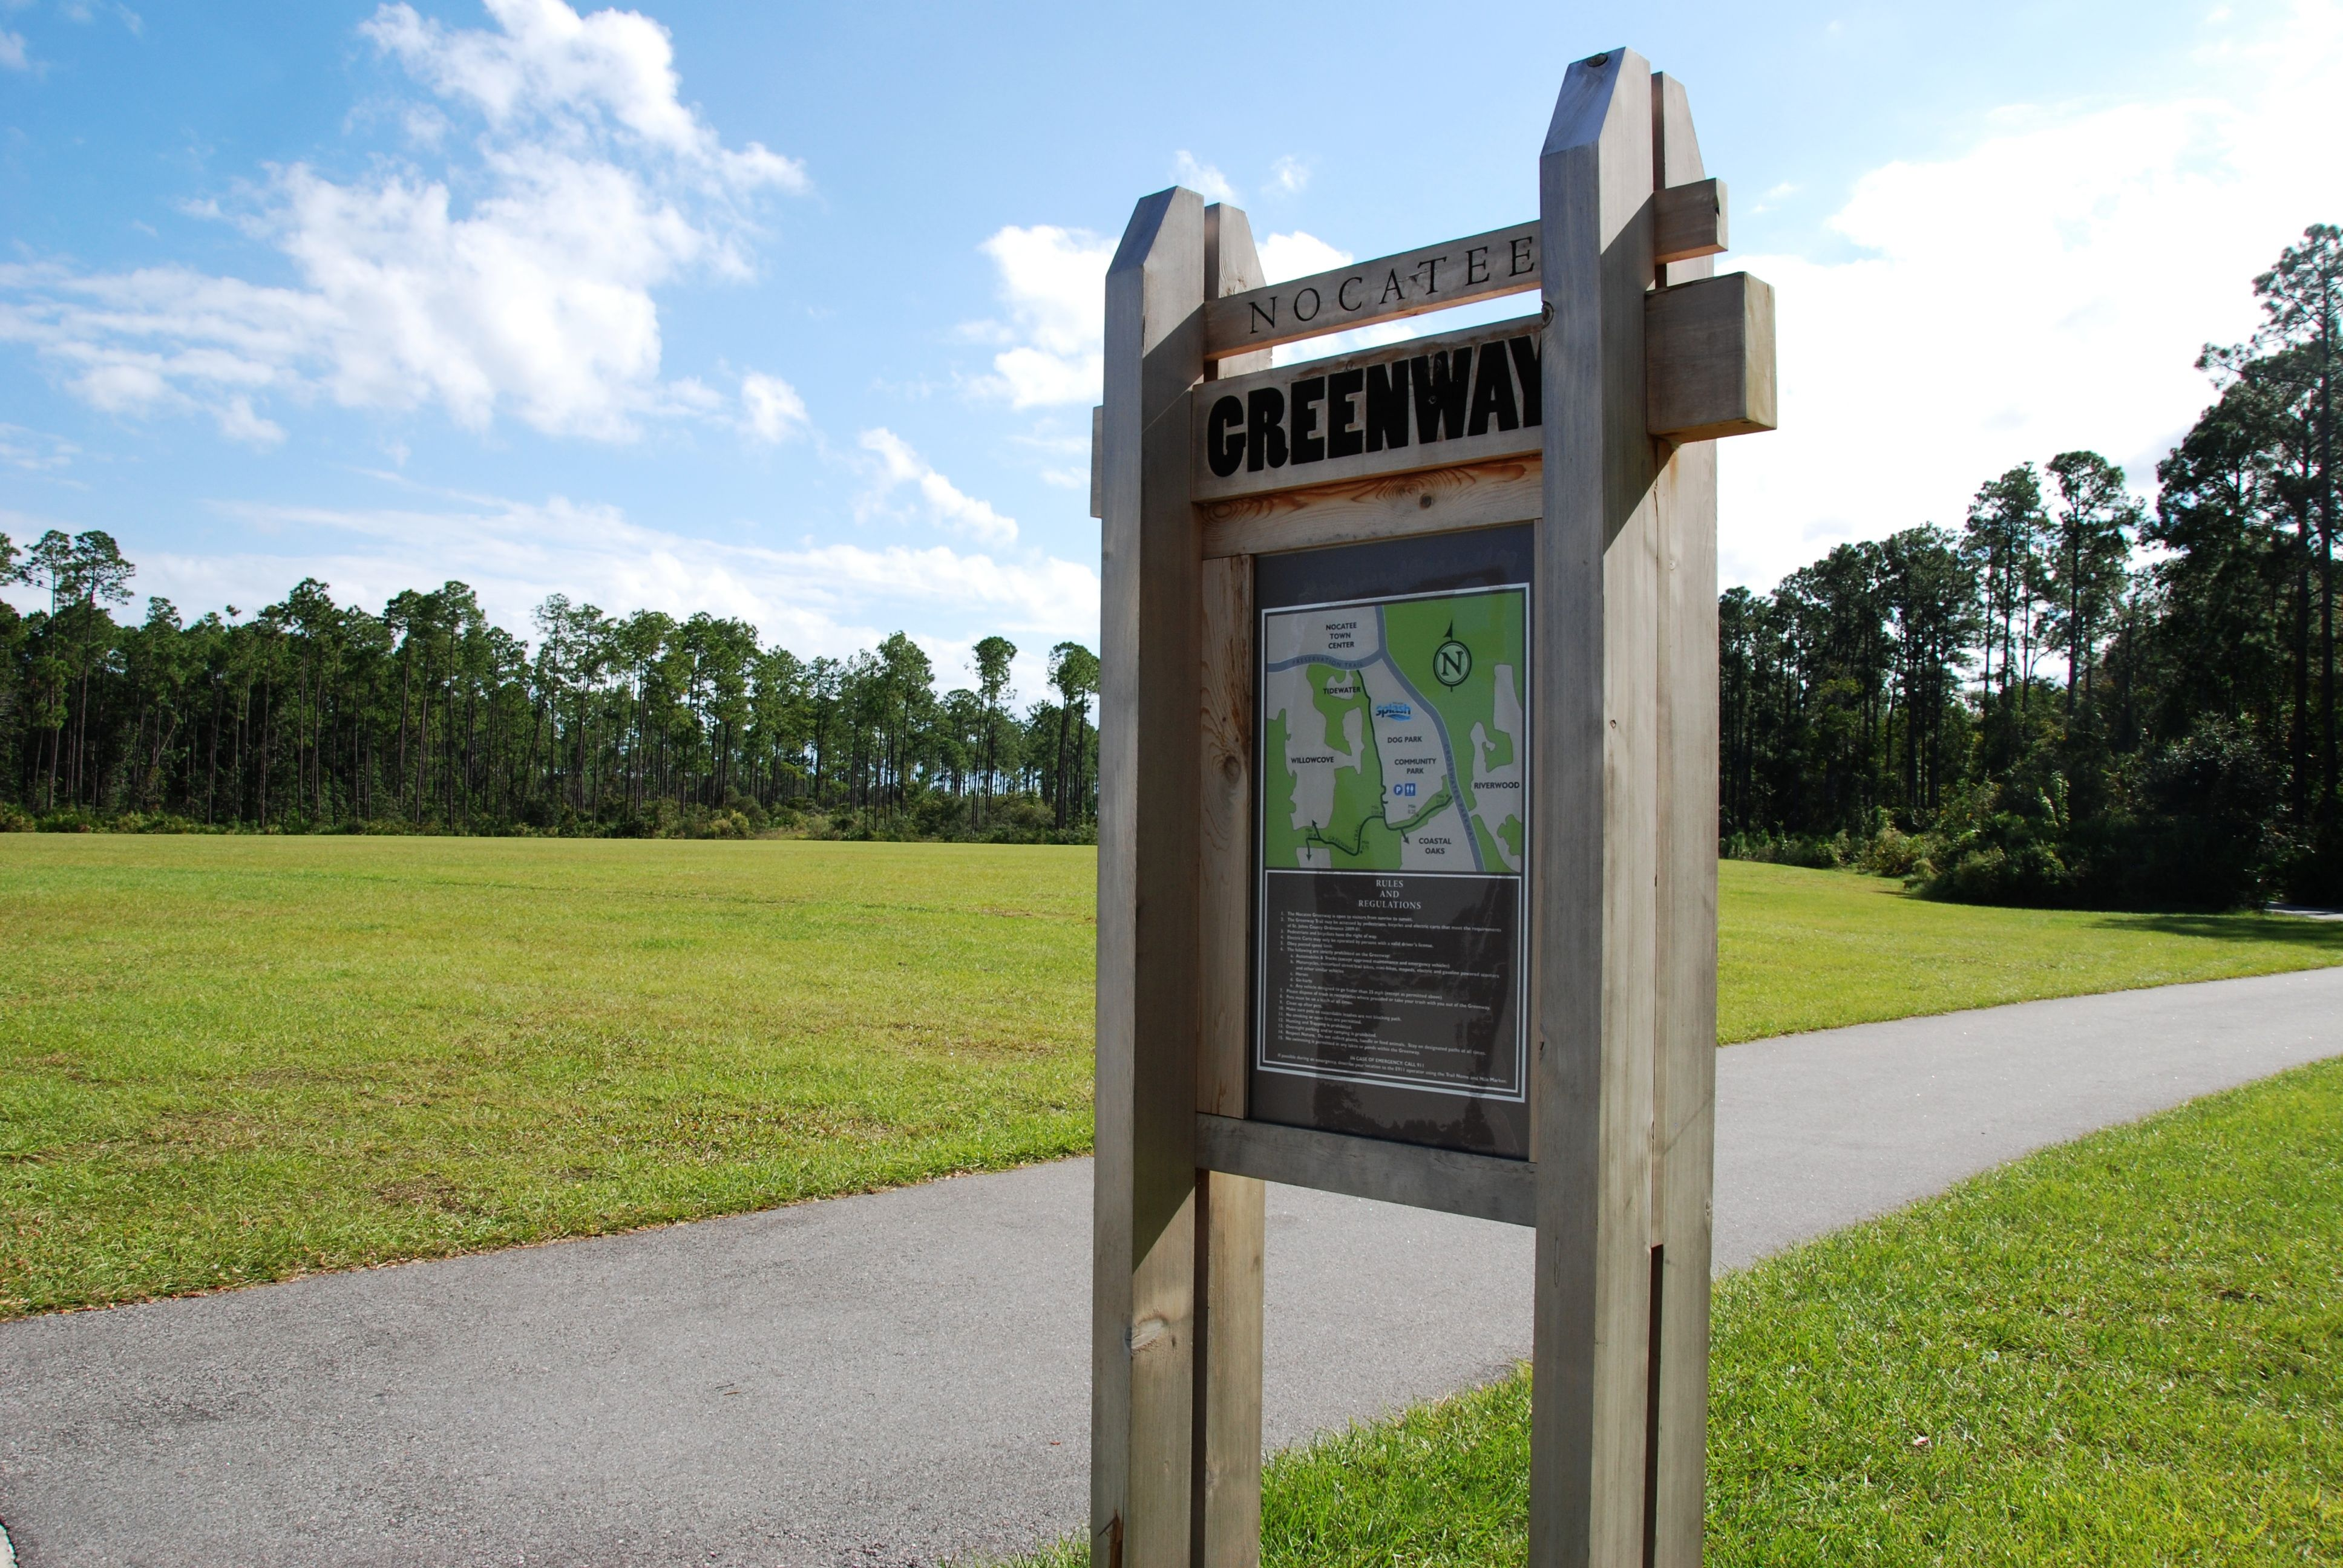 Blog Nocatee Nocatee Greenway Trails Community park